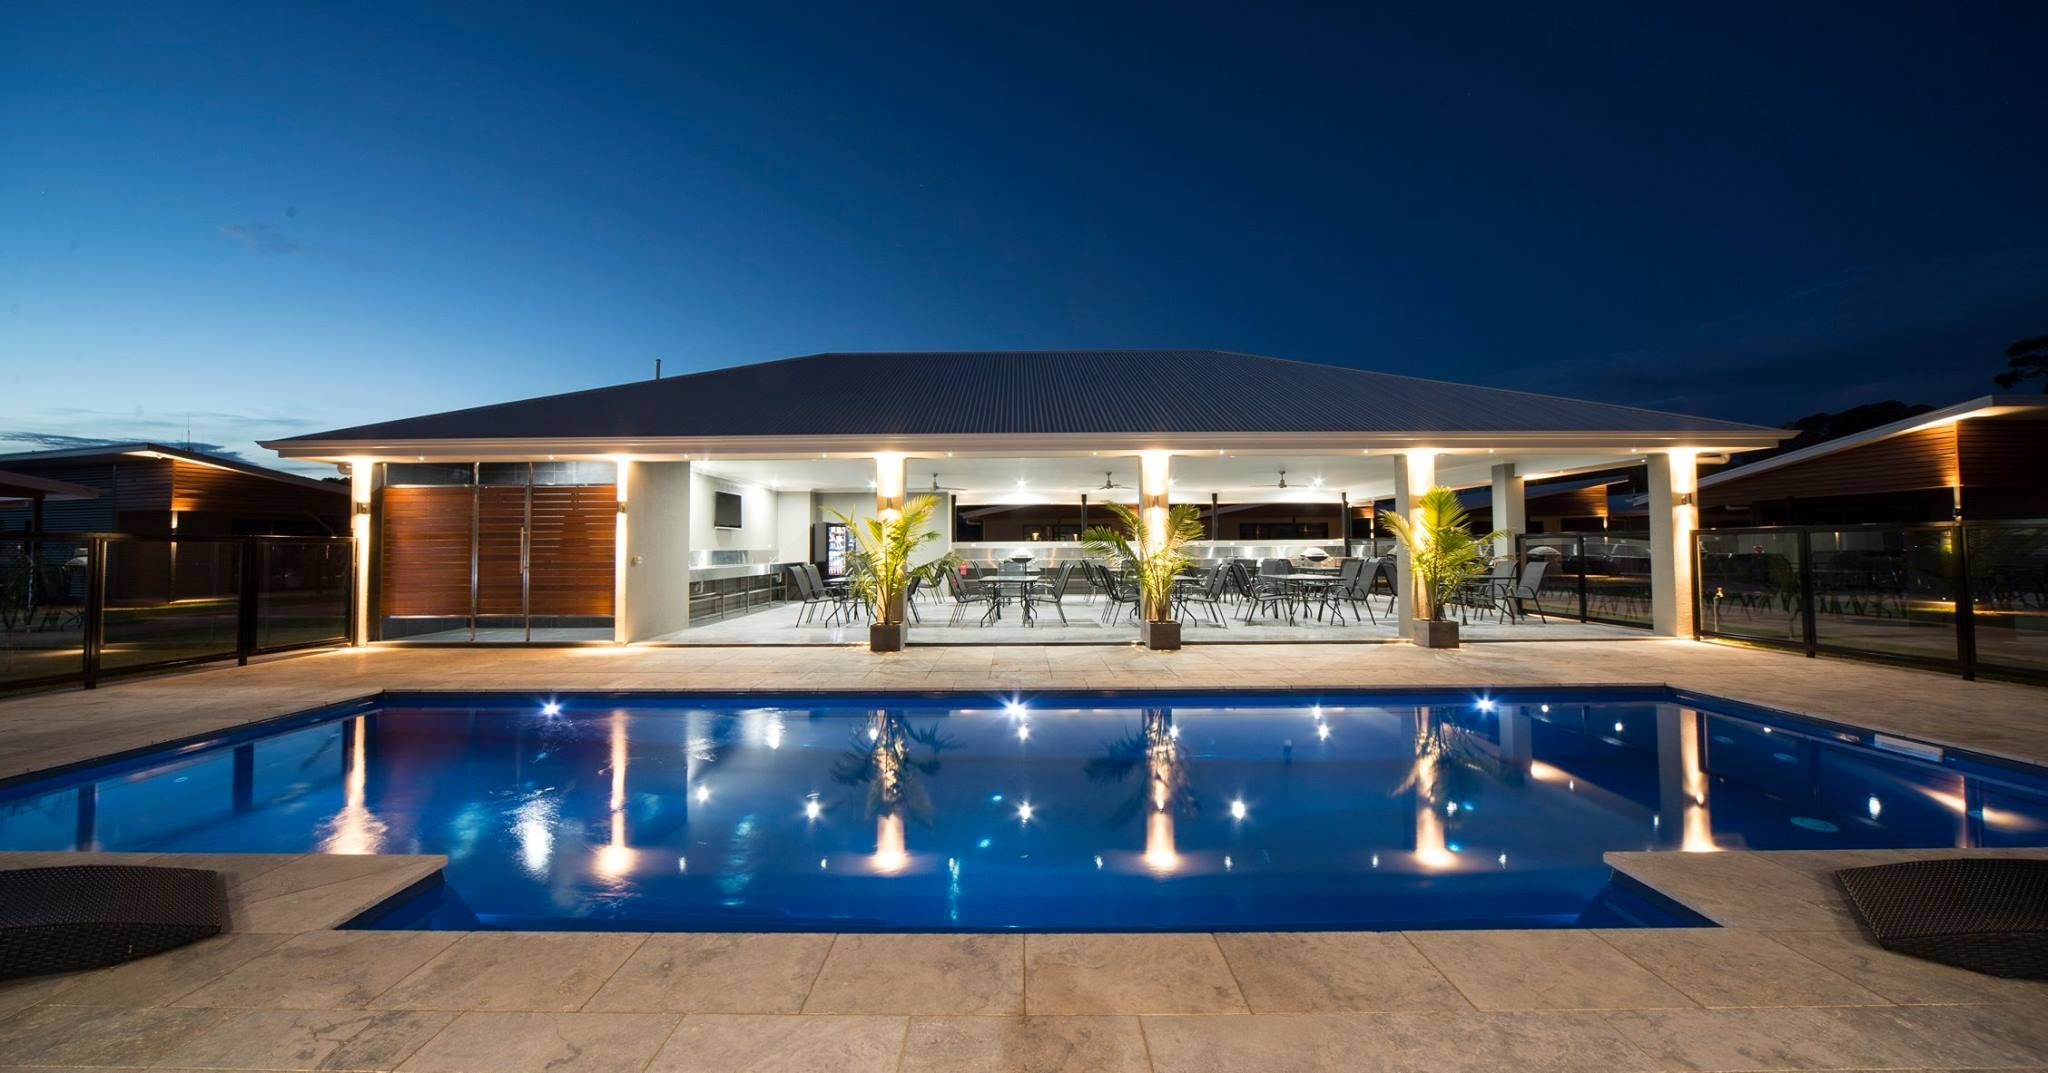 Live Your Life Of Leisure By Enjoying The Leisure Pools